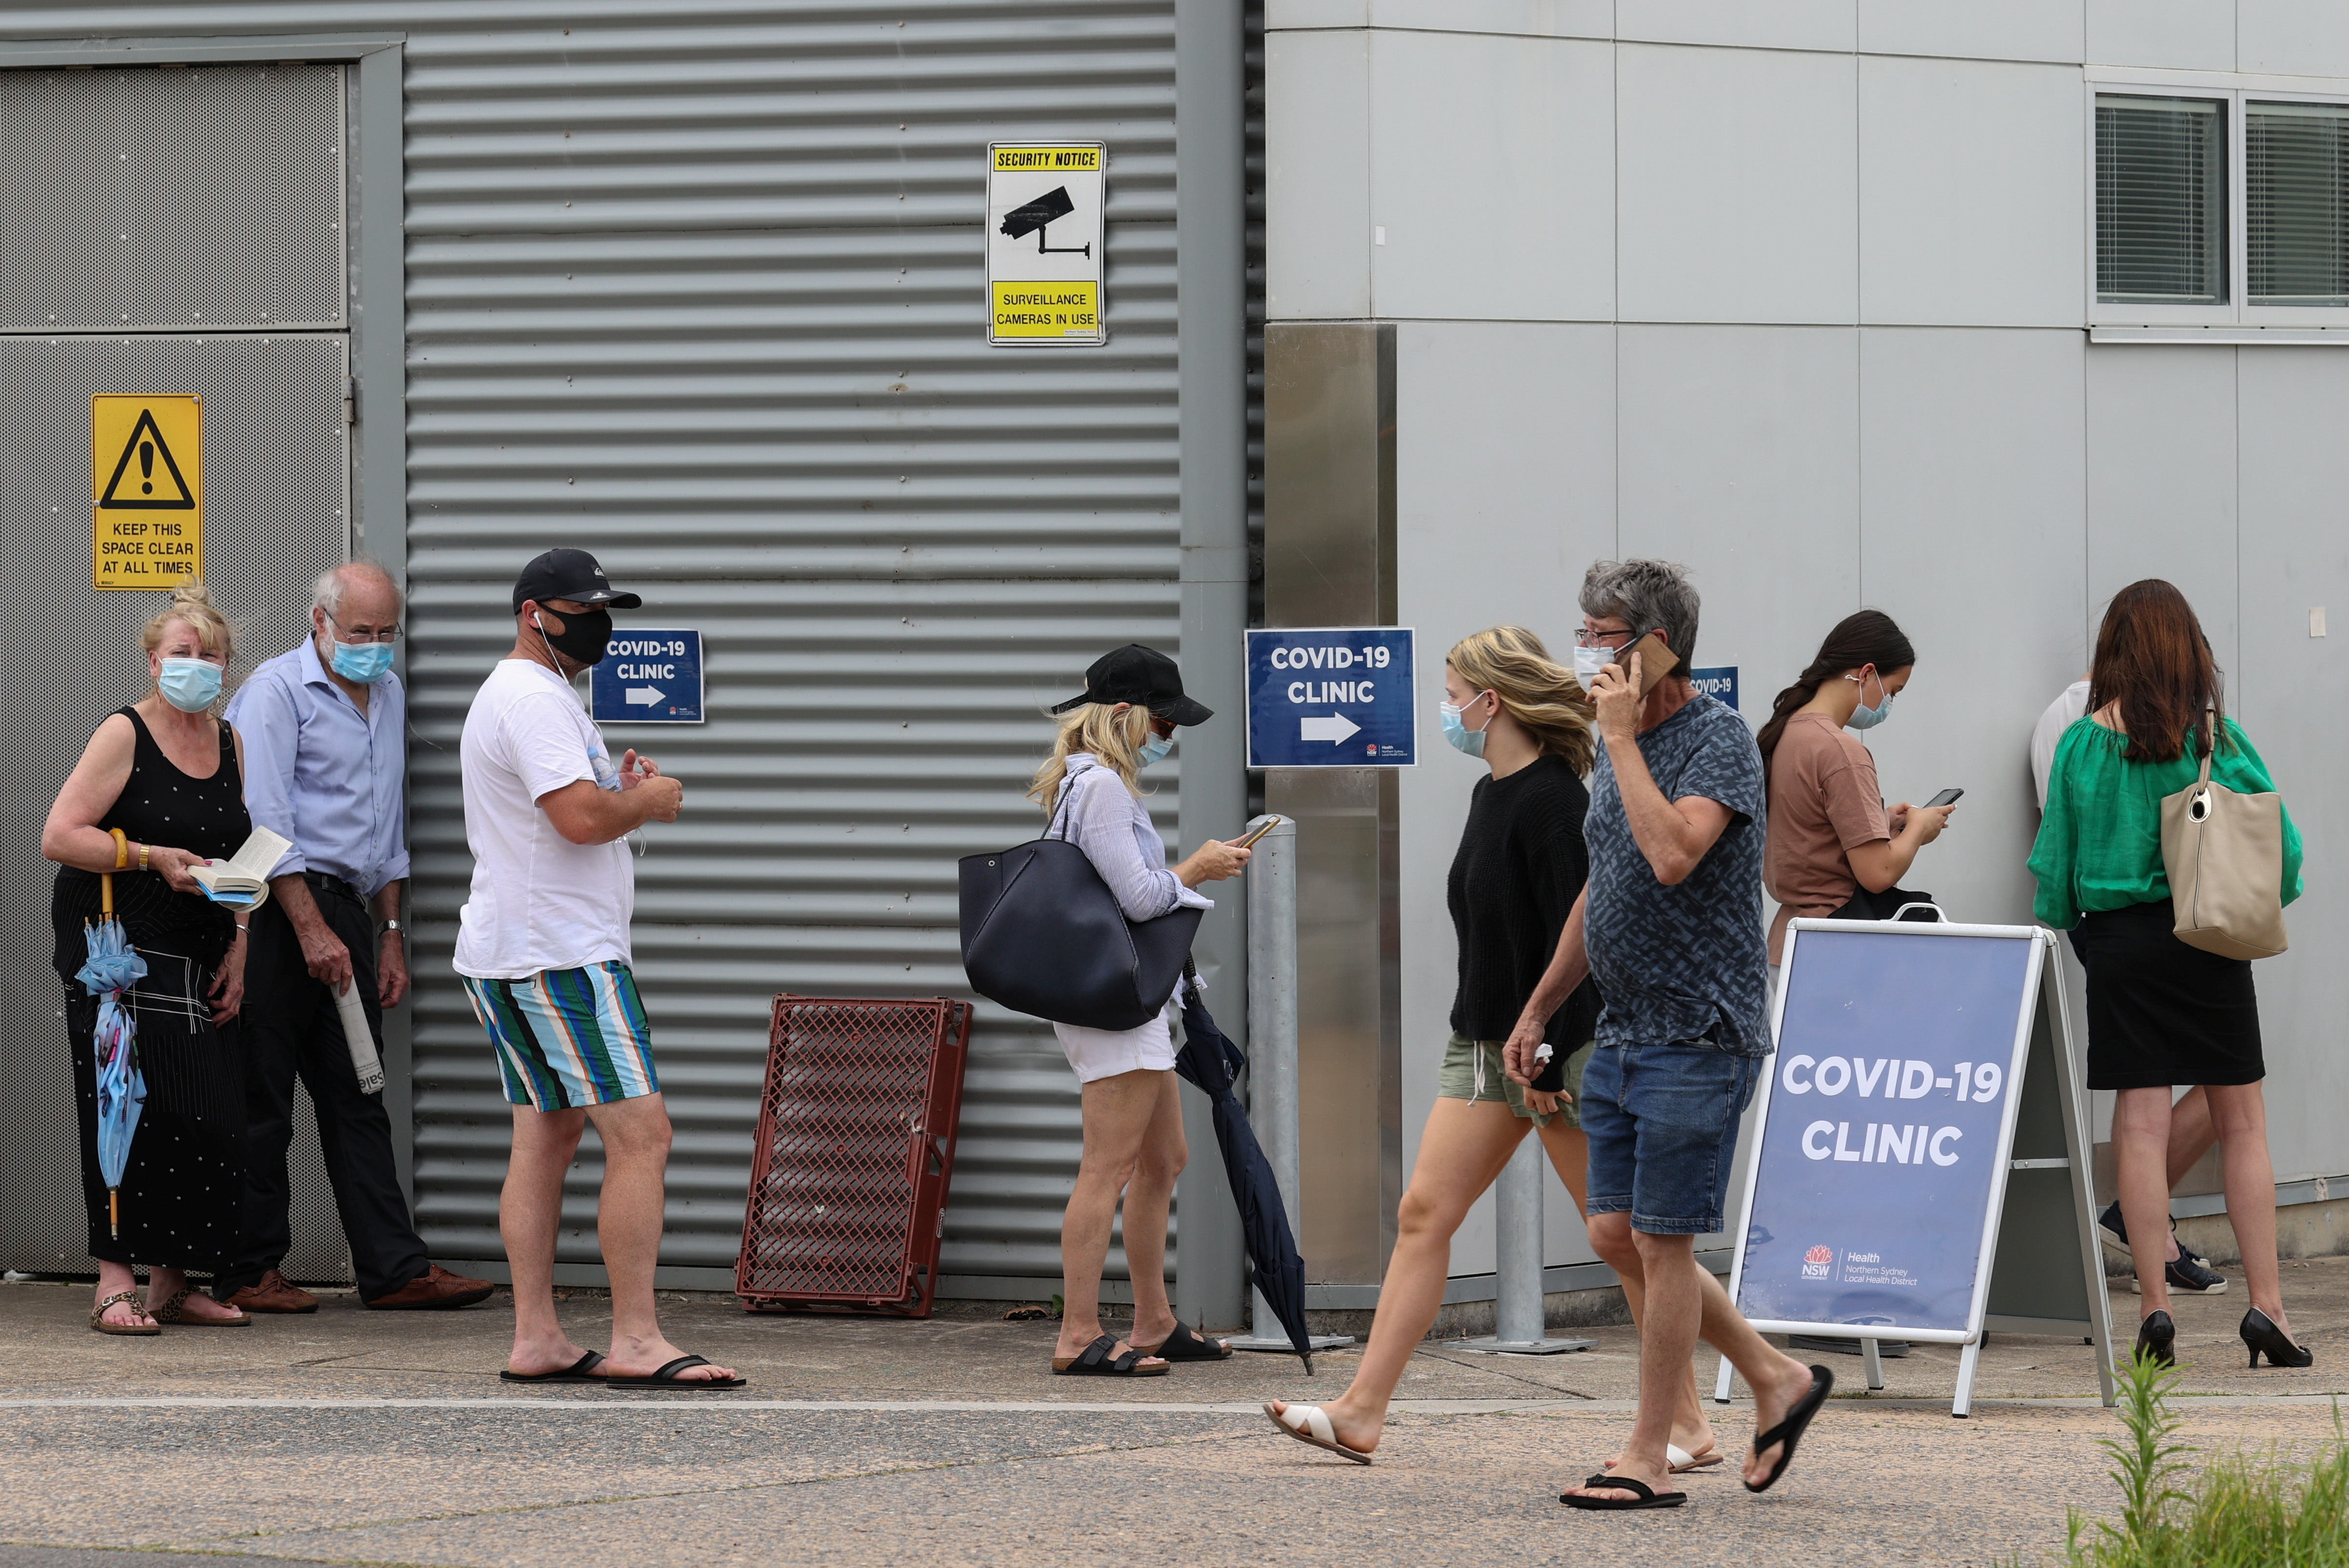 People wait in line at a coronavirus disease (COVID-19) testing clinic at Mona Vale Hospital in the wake of a new outbreak in the Northern Beaches area of Sydney, Australia, December 18, 2020.  REUTERS/Loren Elliott